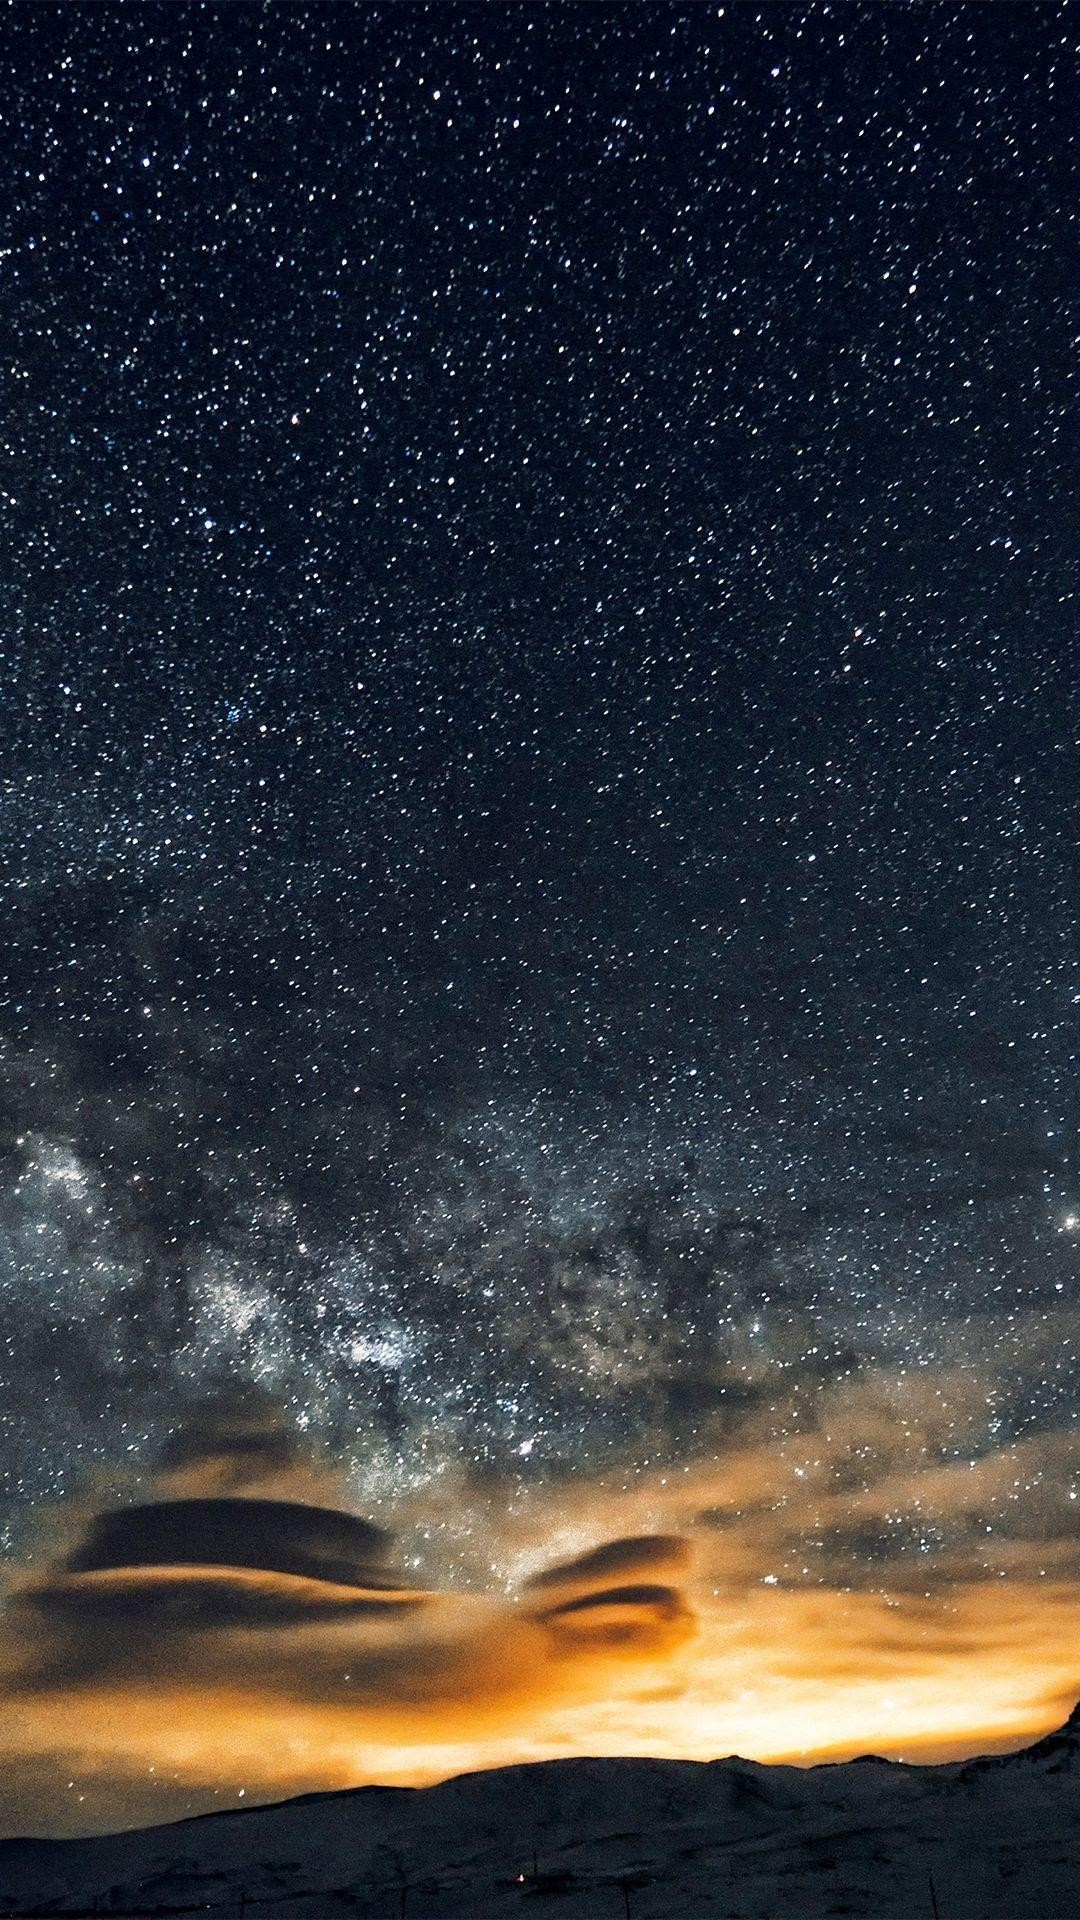 Sky iphone wallpaper high quality